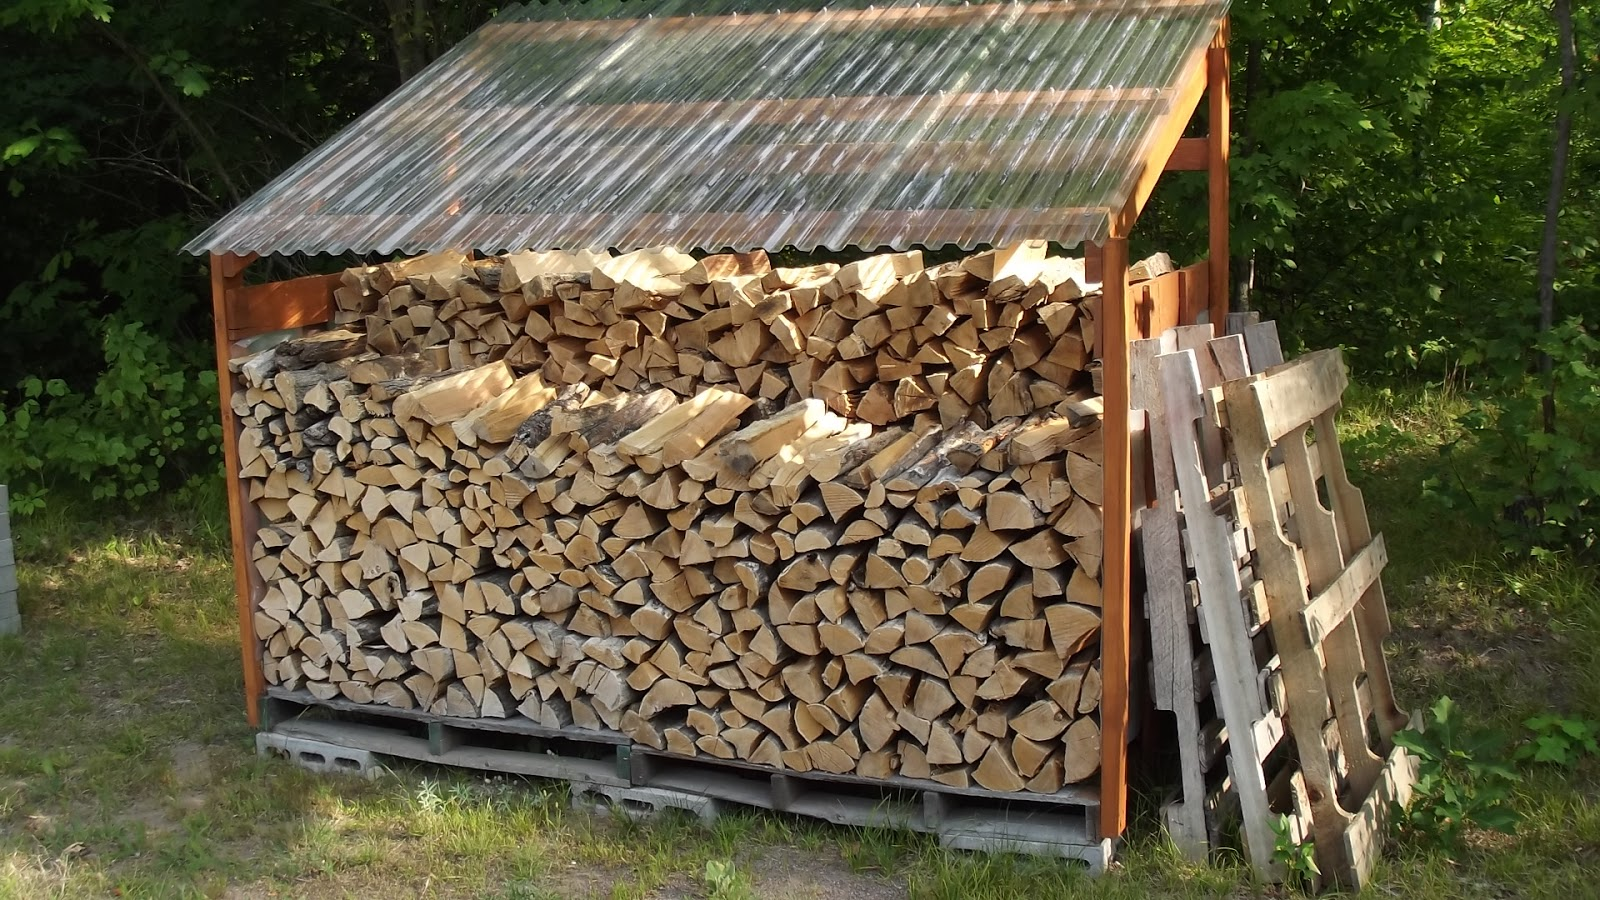 If I Pull Anymore Wood Out The Woods This Fall, Iu0027ll Have To Make Another  Rack To Hold It. Everything Outside Is Getting Full.